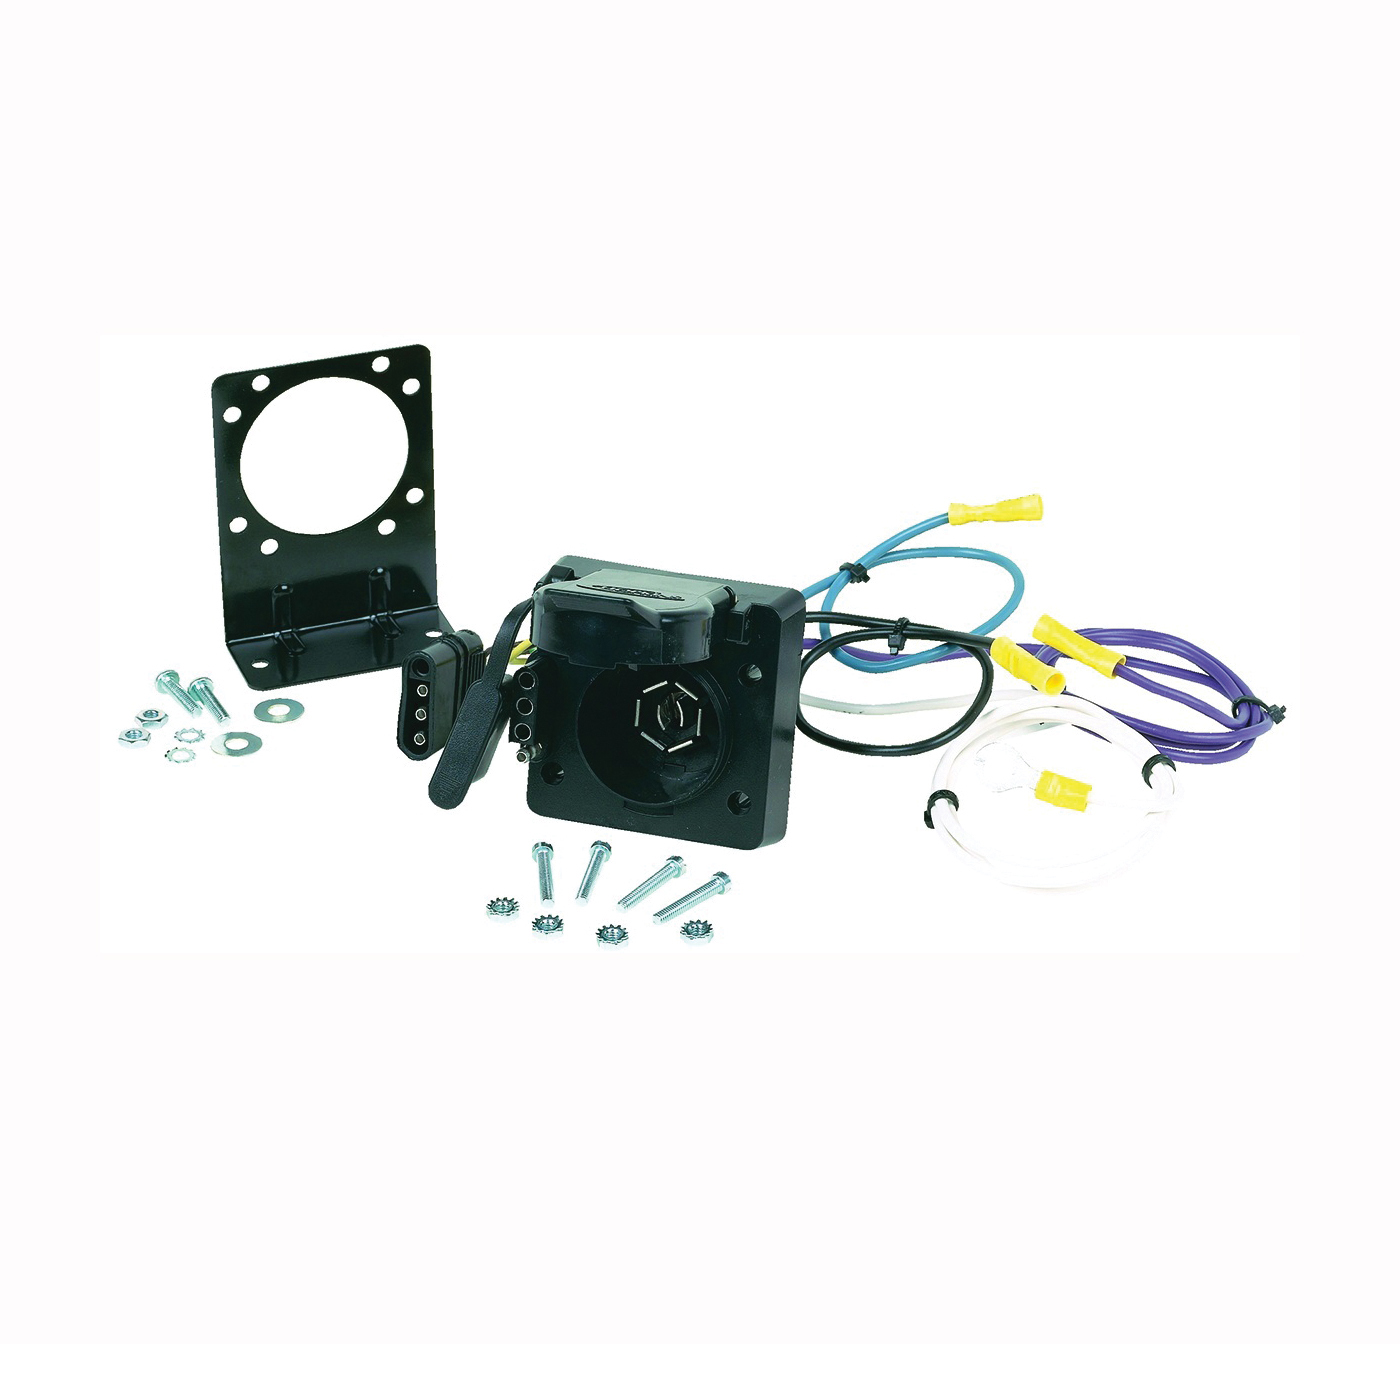 Picture of HOPKINS Multi-Tow 47185 Trailer Connector, 4 -Pole, Metal/Plastic Housing Material, Black